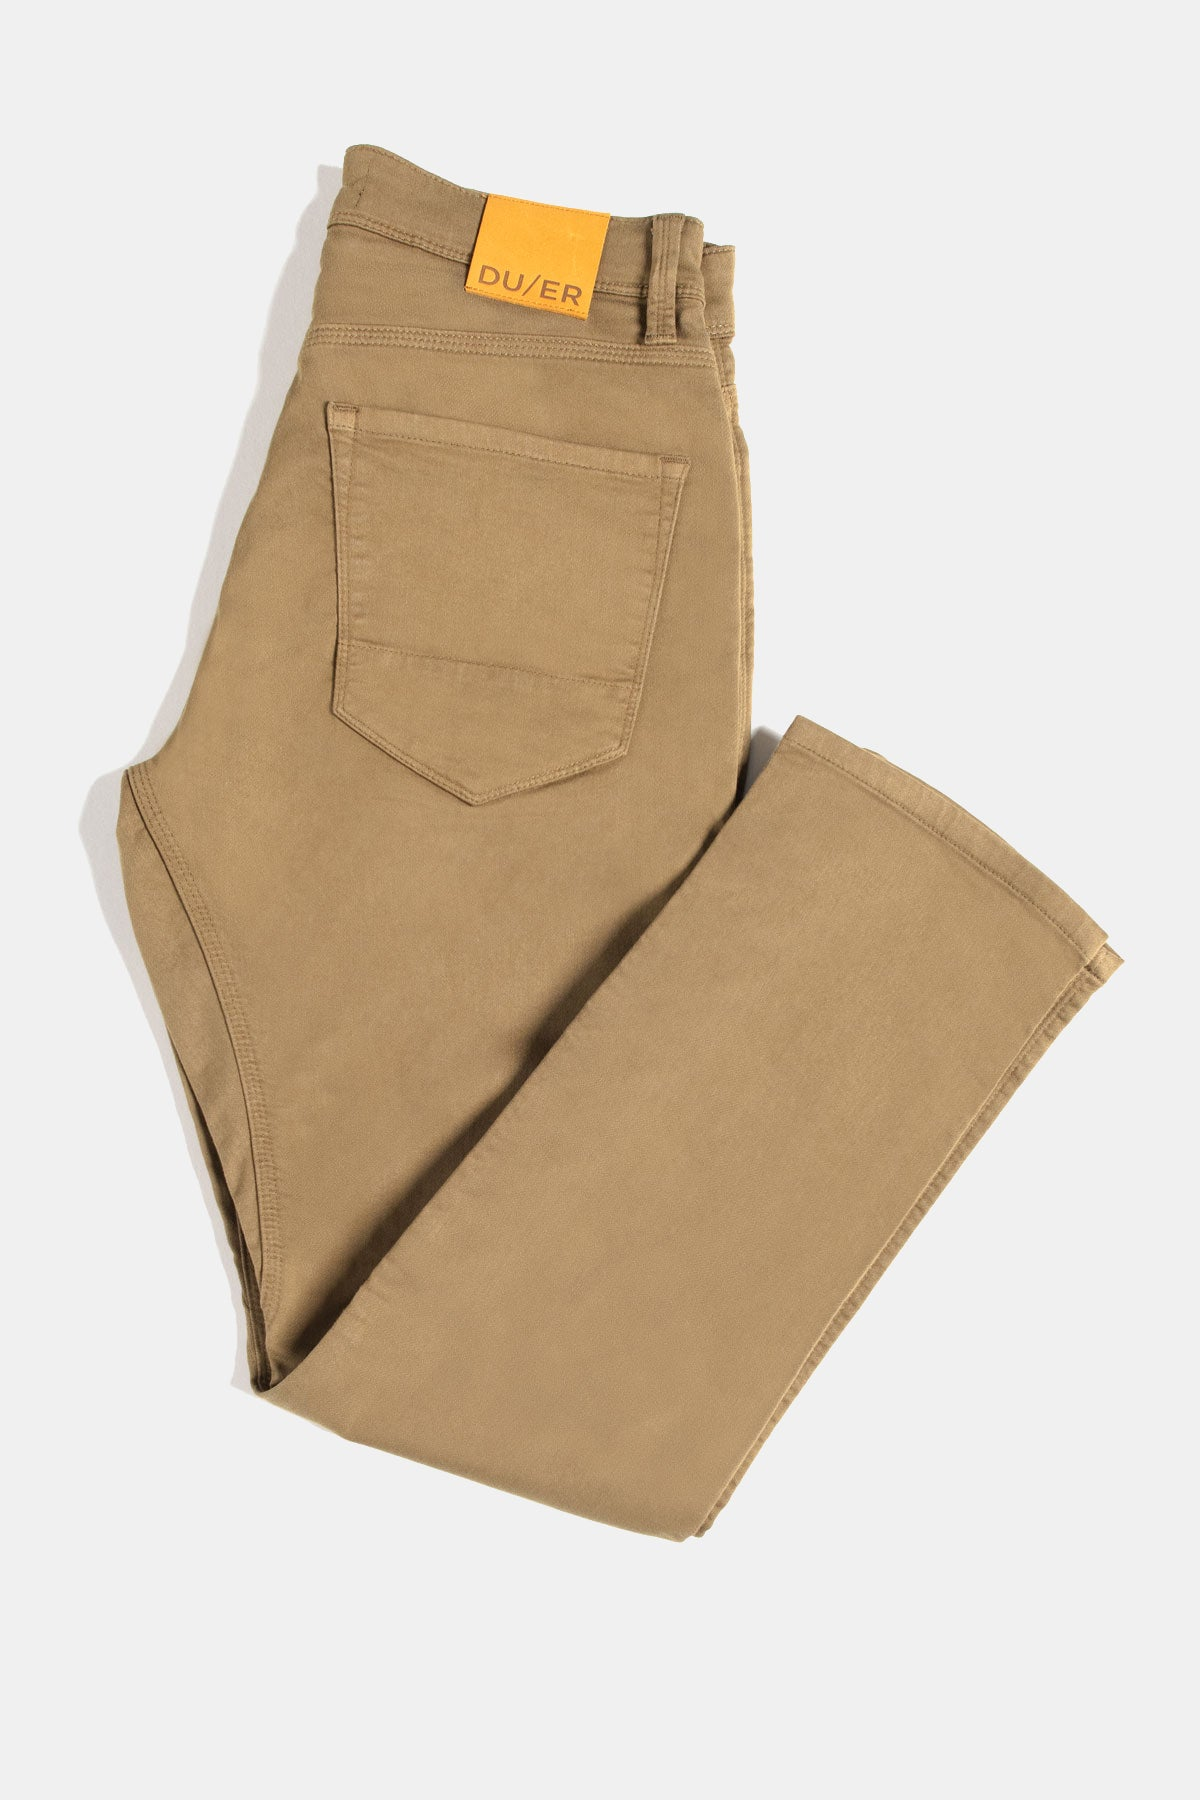 Duer No Sweat Pant Relaxed for Men in Tobacco Brown